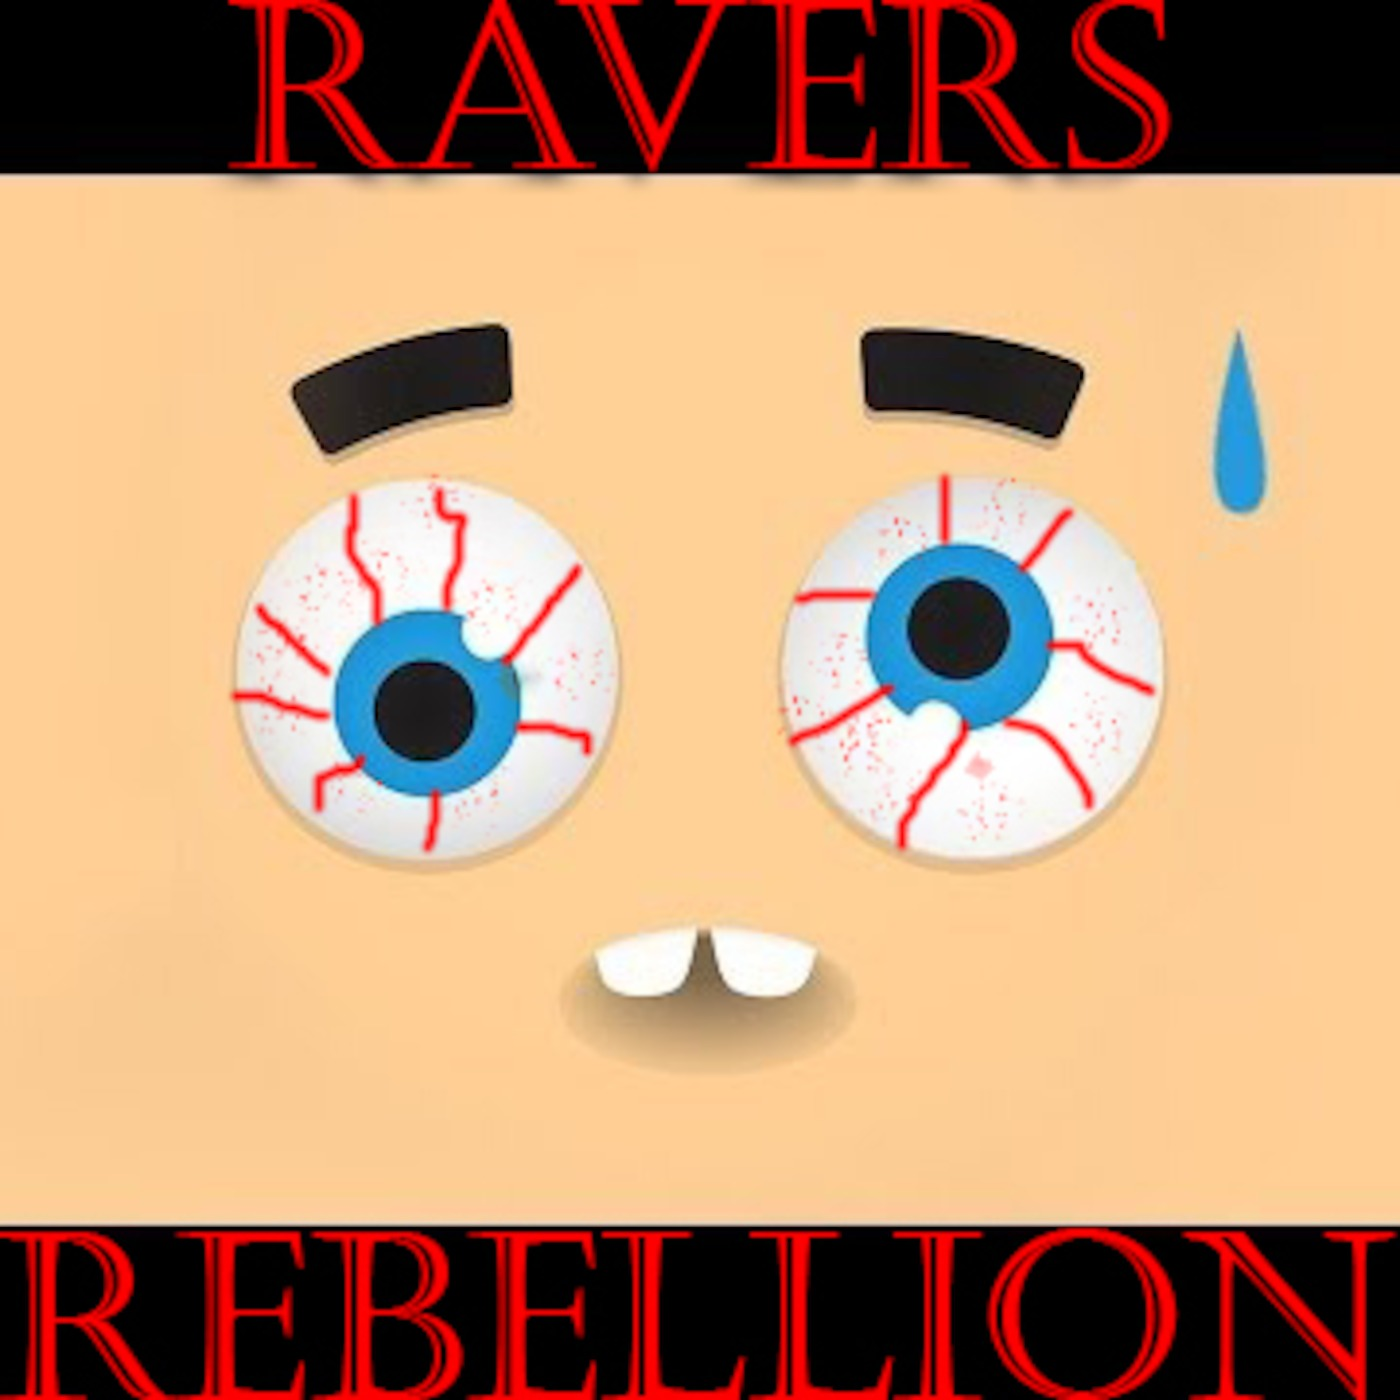 Ravers Rebellion